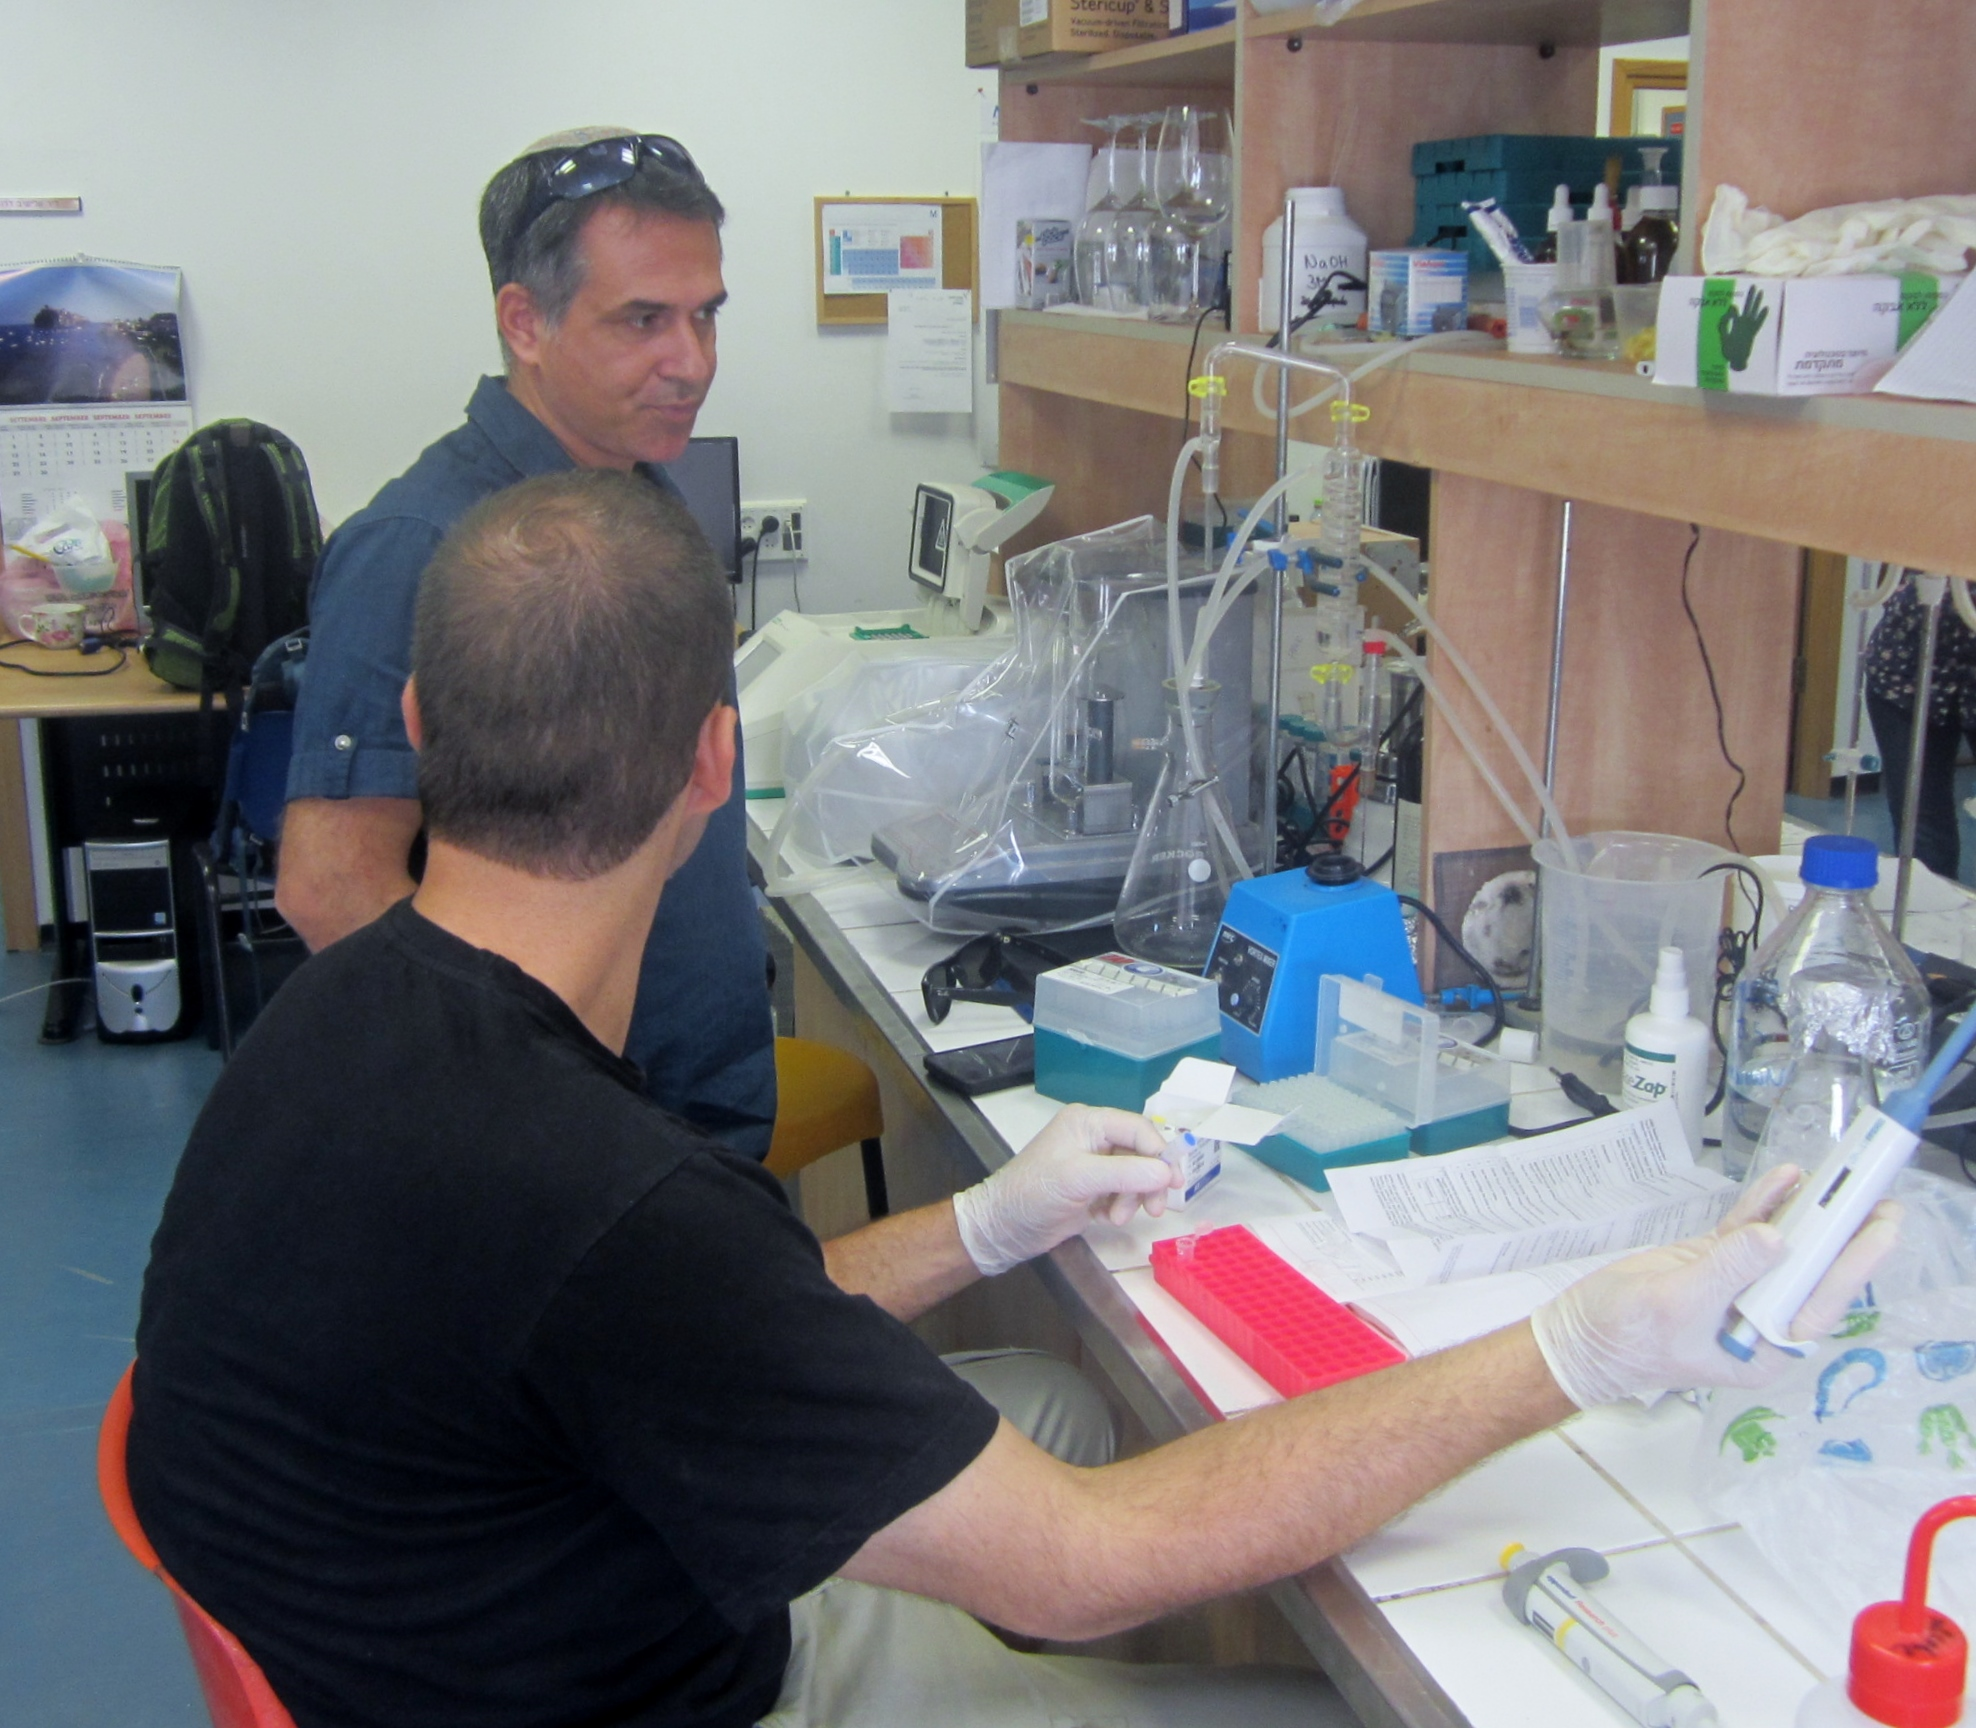 Elyashiv Drori, who has been working for years to identify and grow grapes indigenous to Israel, consulting with a researcher in his lab at Ariel University, Sept. 30, 2014. (Ben Sales)